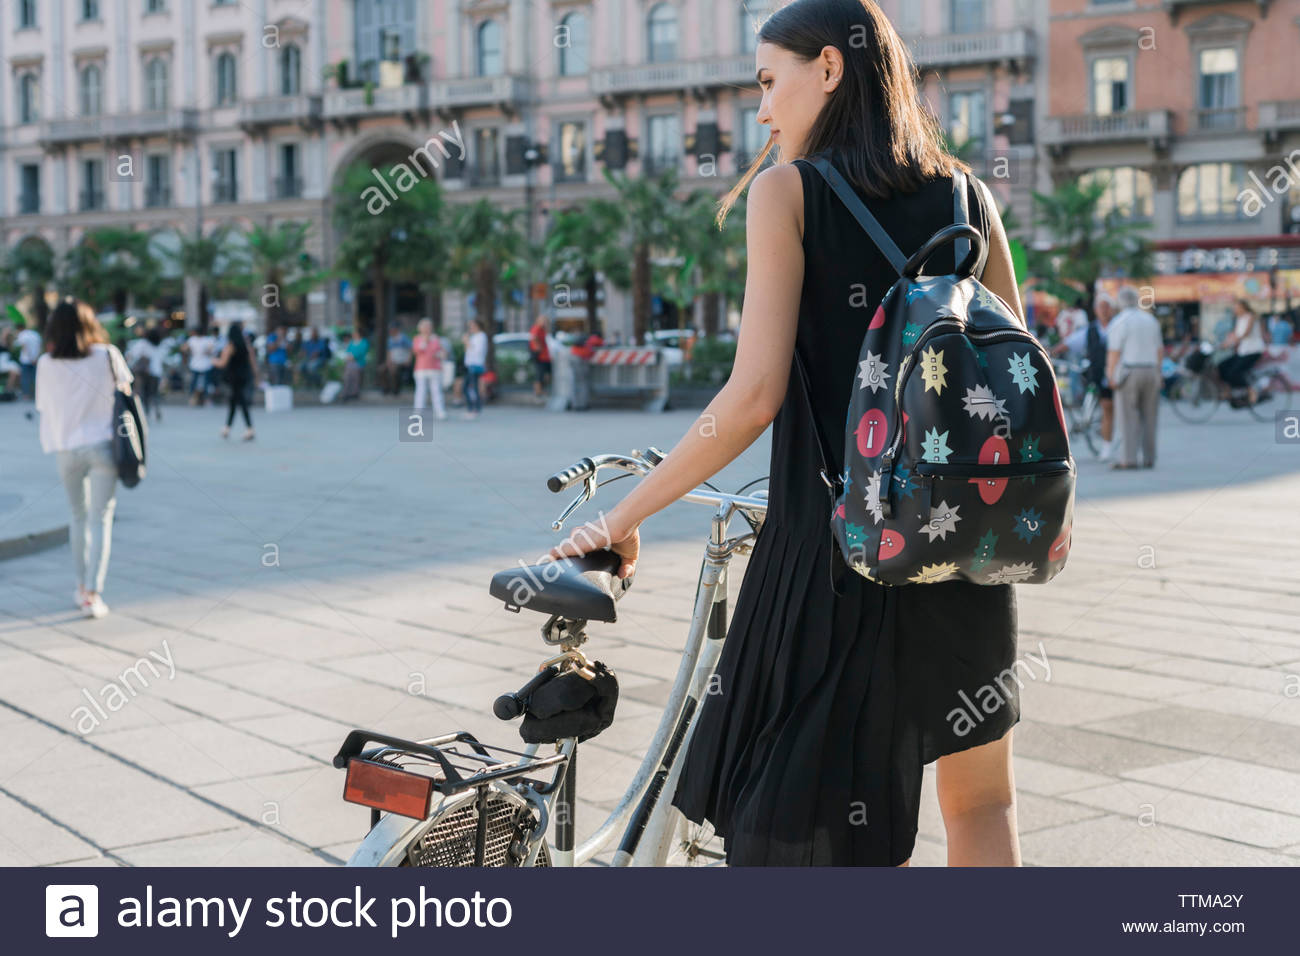 Rear view of woman with bicycle standing on city street Stock Photo